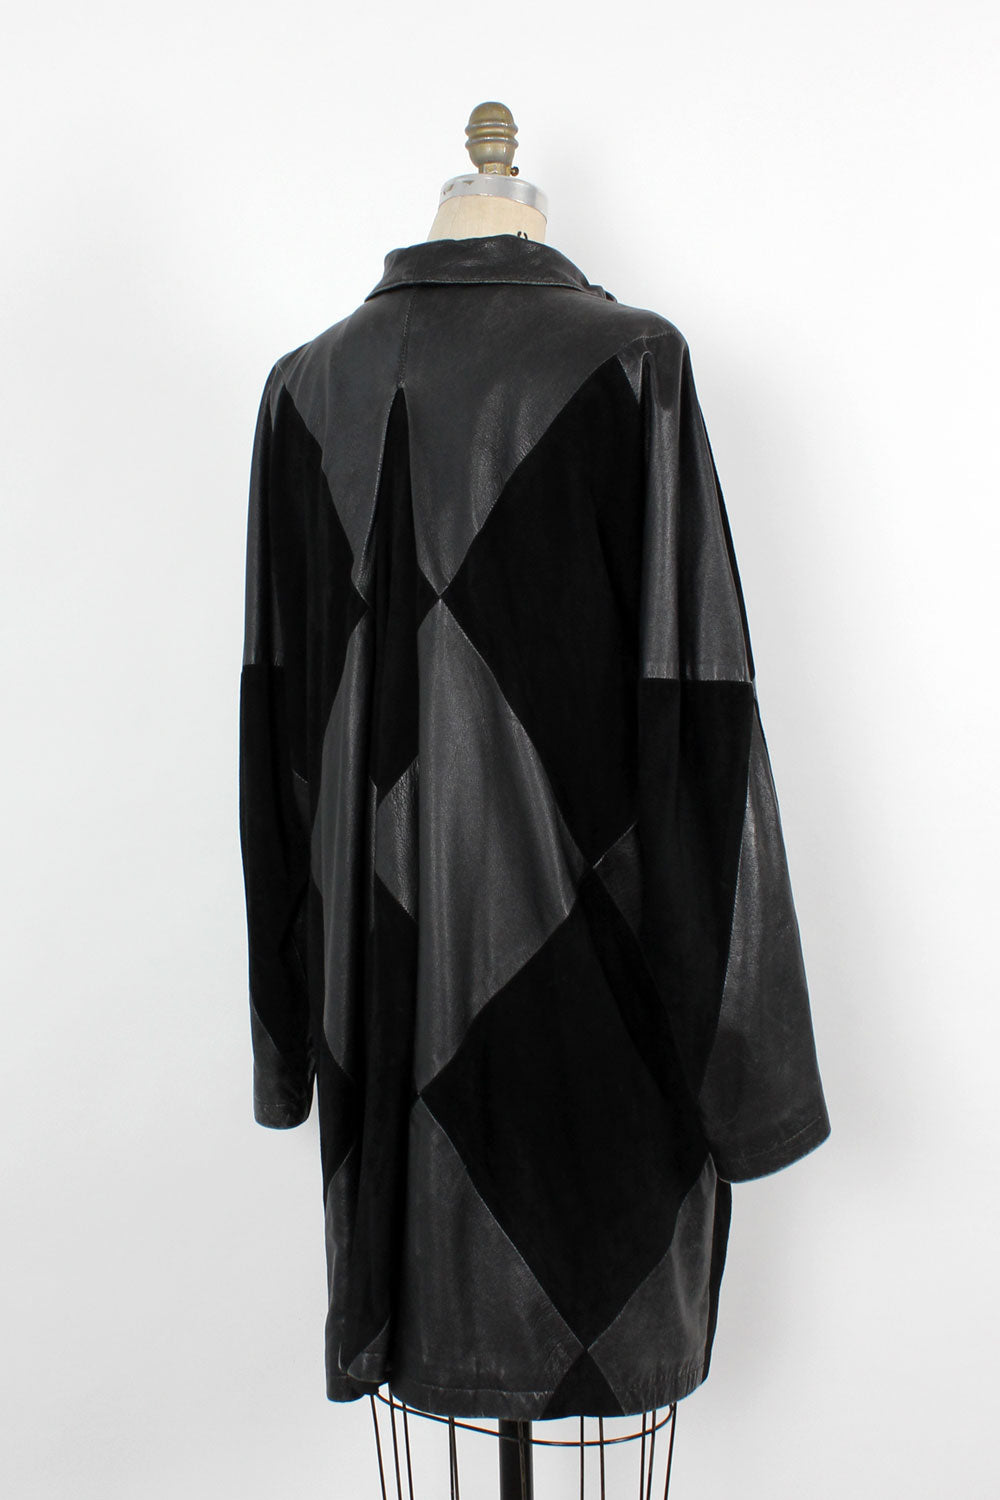 LAYAWAY • Harlequin Black Leather/Suede Flare Jacket S-L